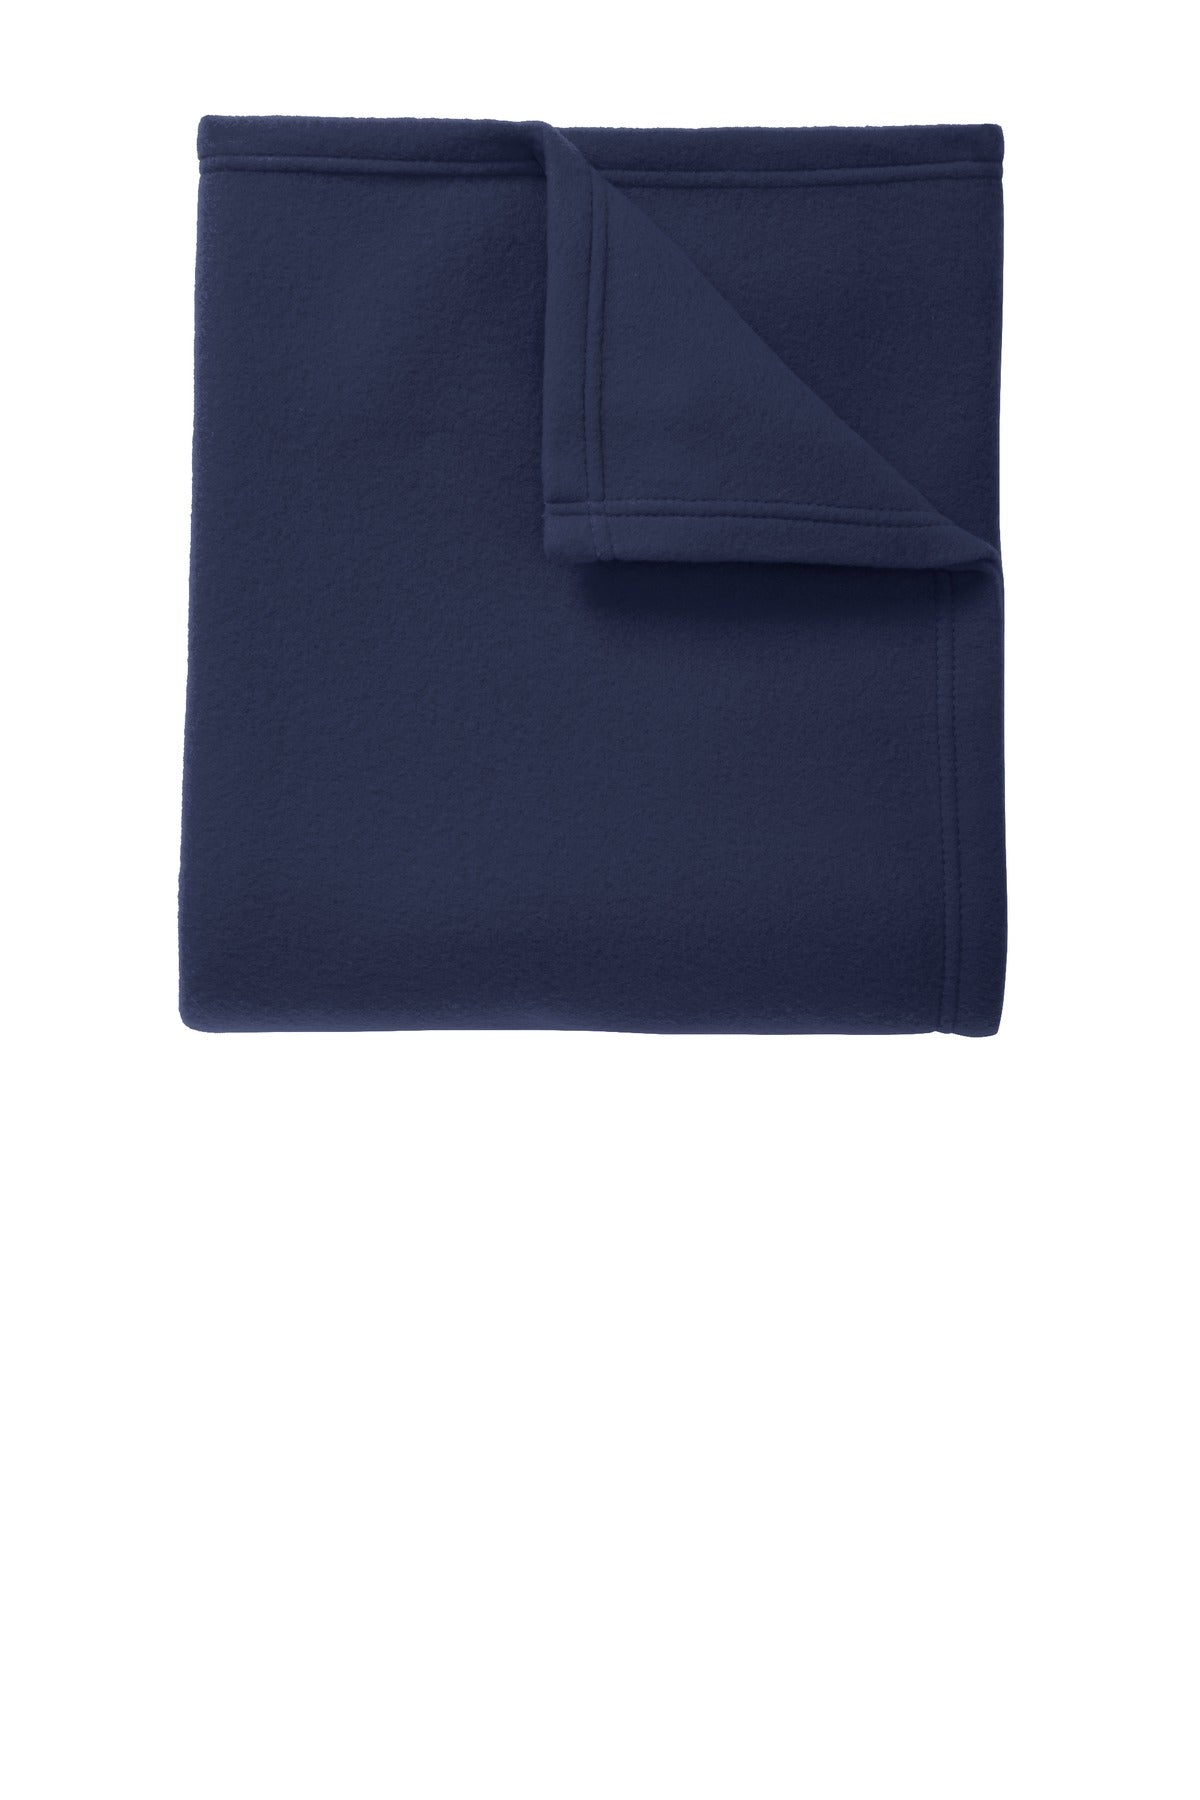 True Navy Port Authority Core Fleece Blanket.